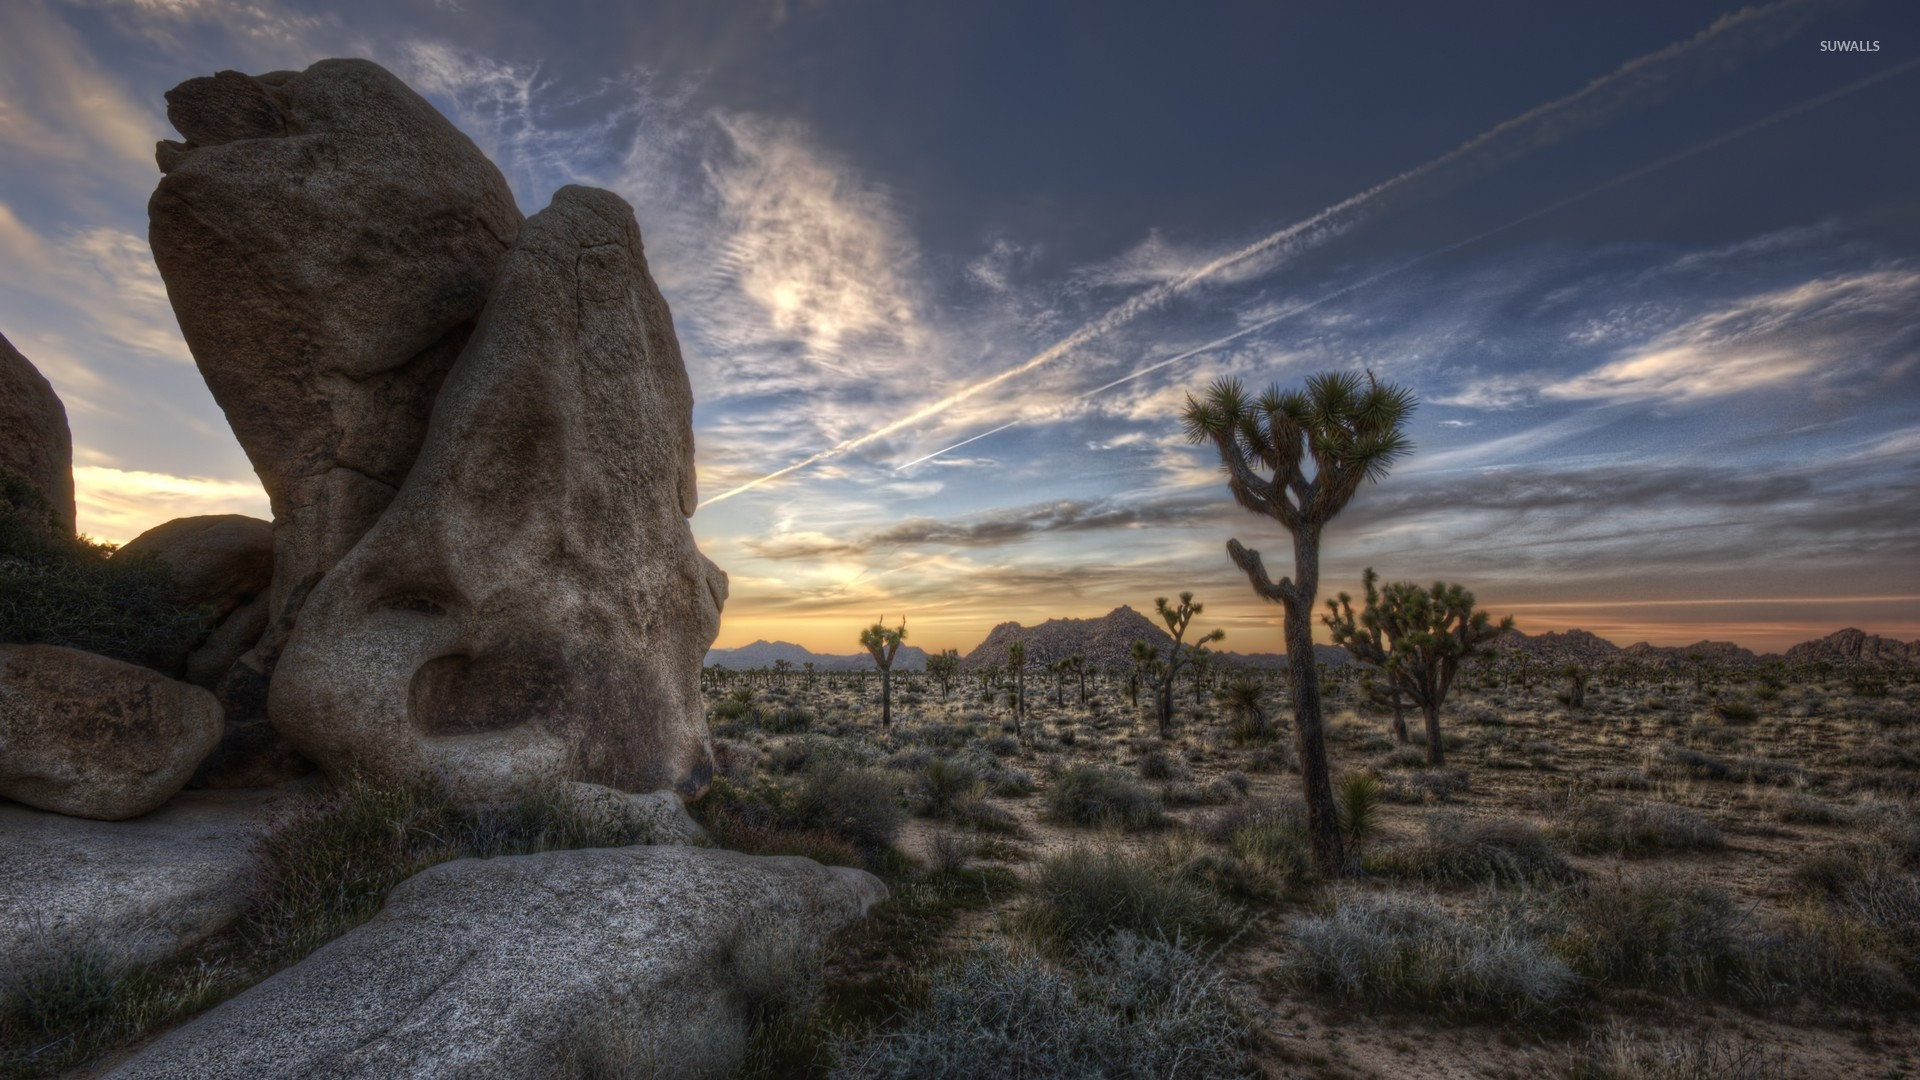 joshua tree national park [4] wallpaper - nature wallpapers - #45121